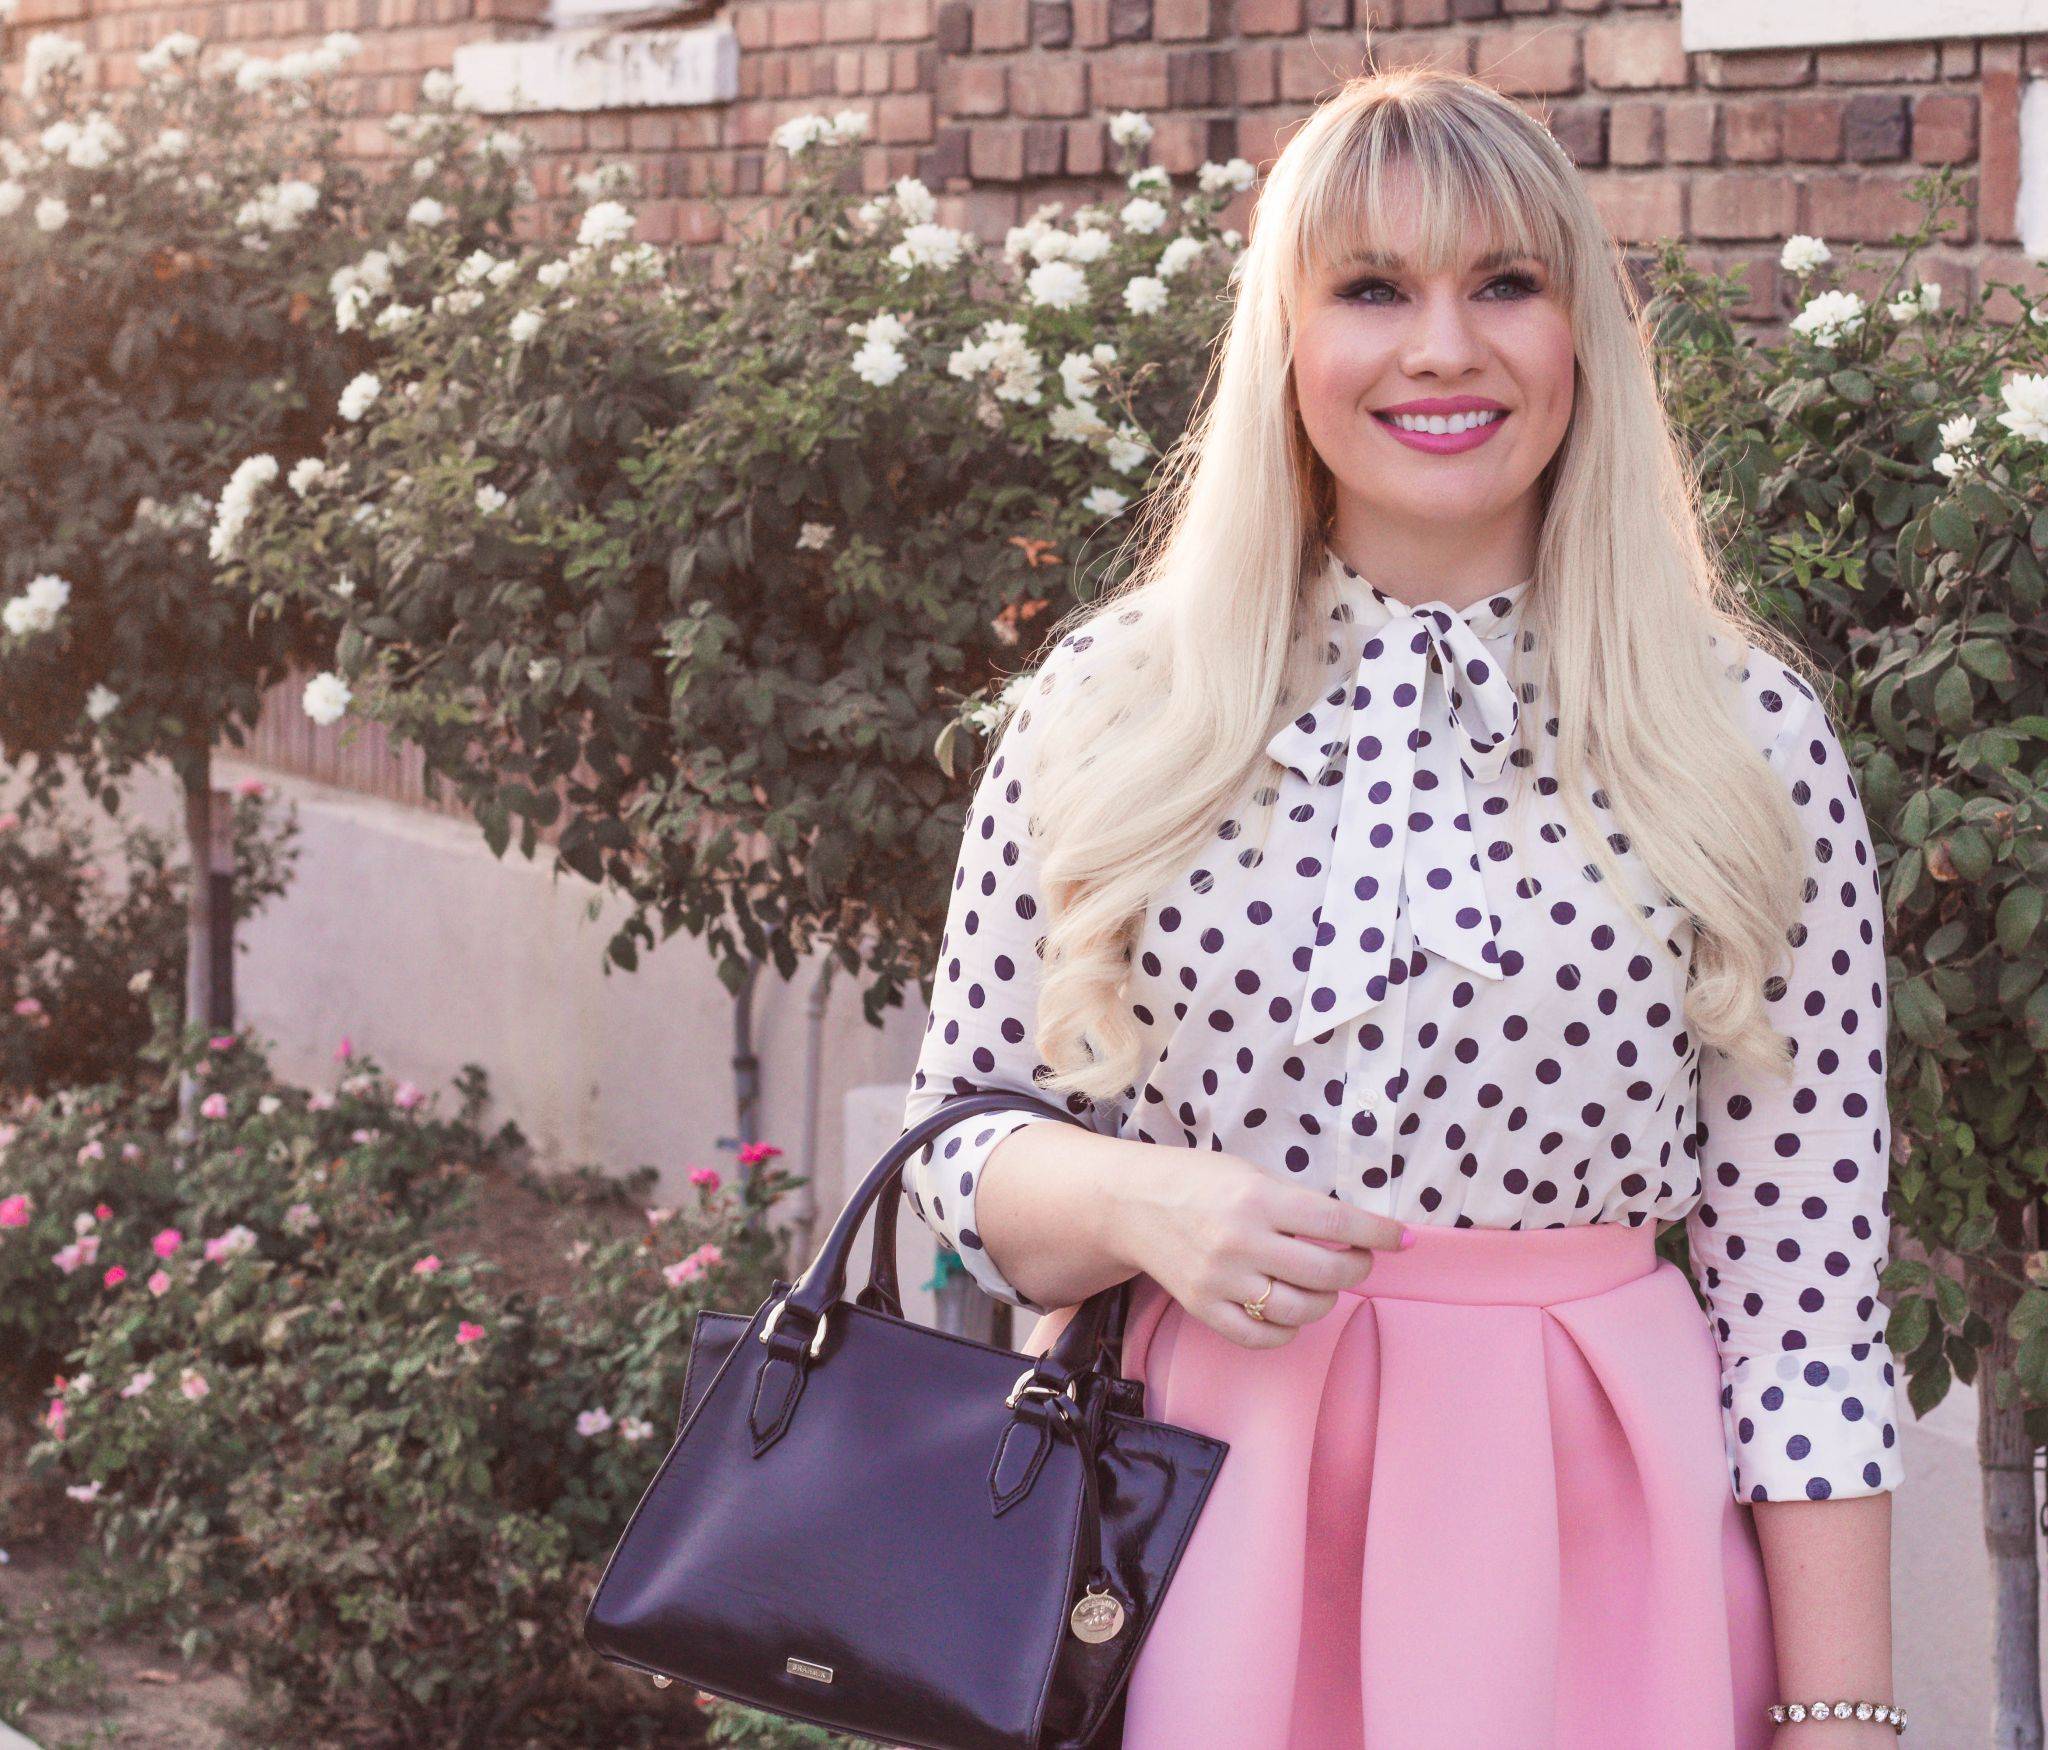 polka dot top outfit